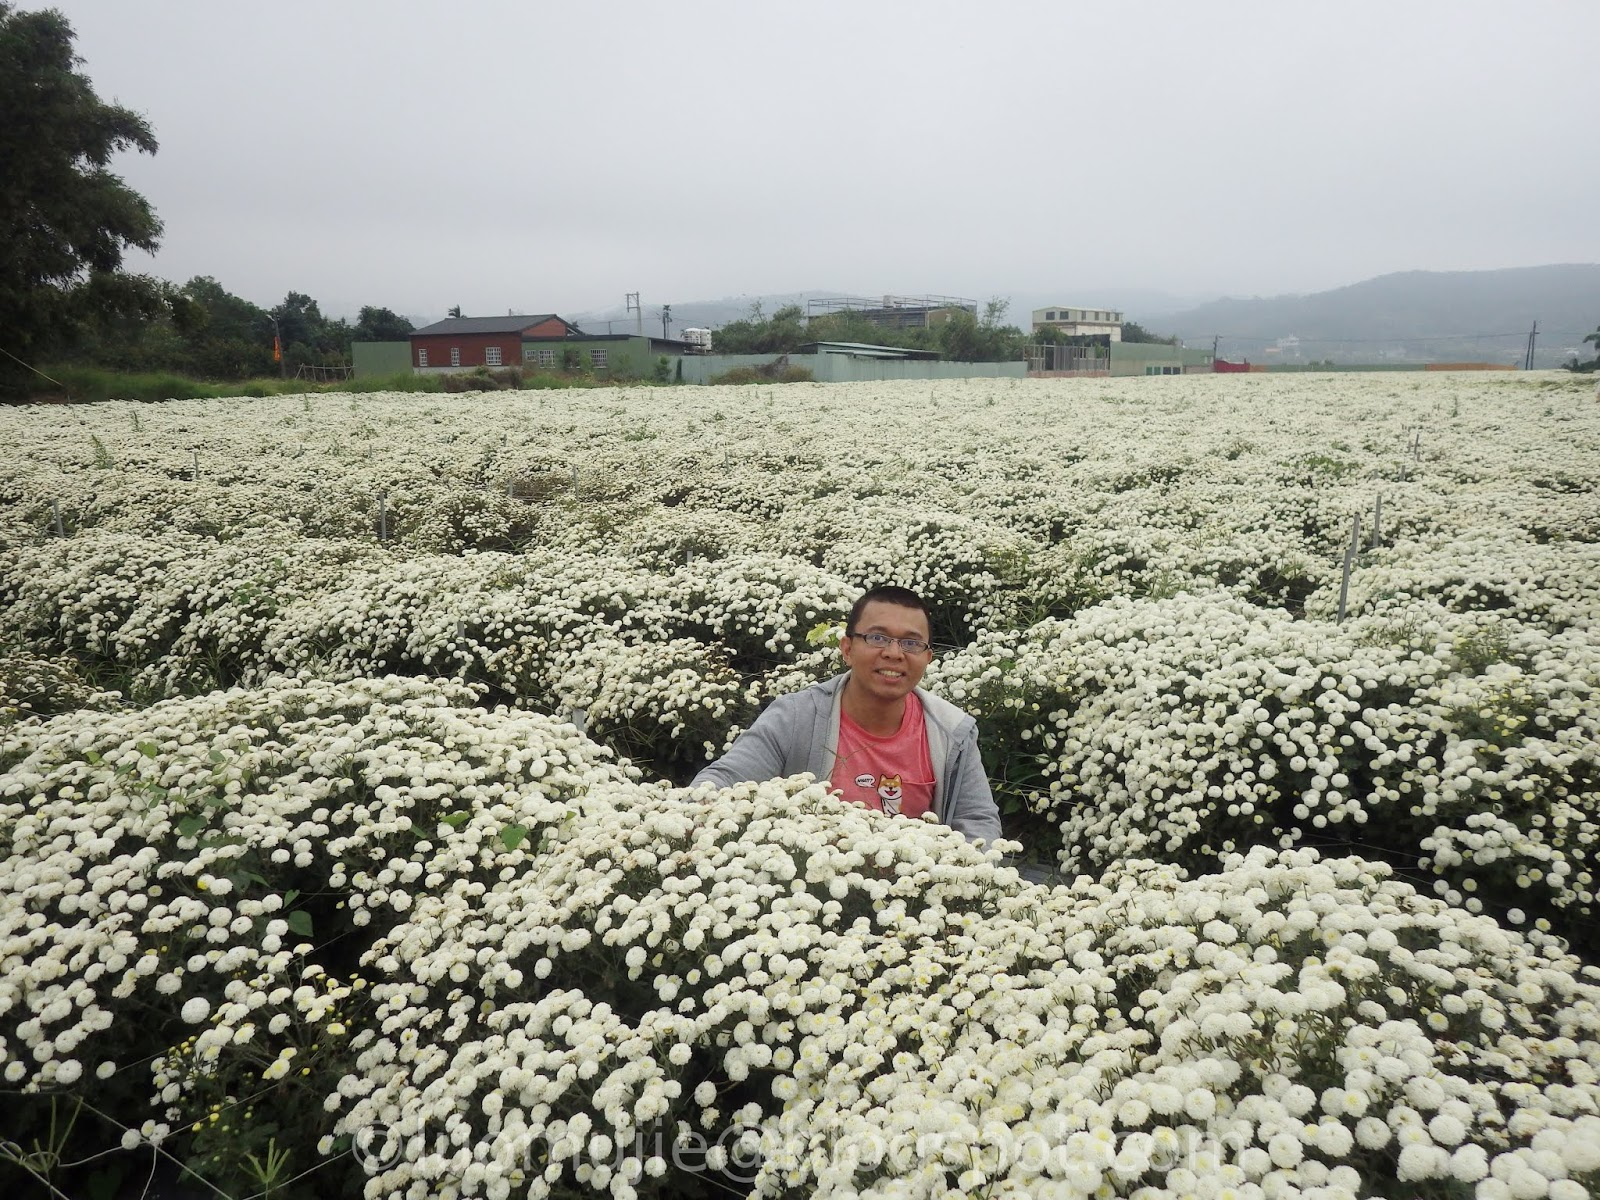 Miaoli Chrysanthemum Flower Sea